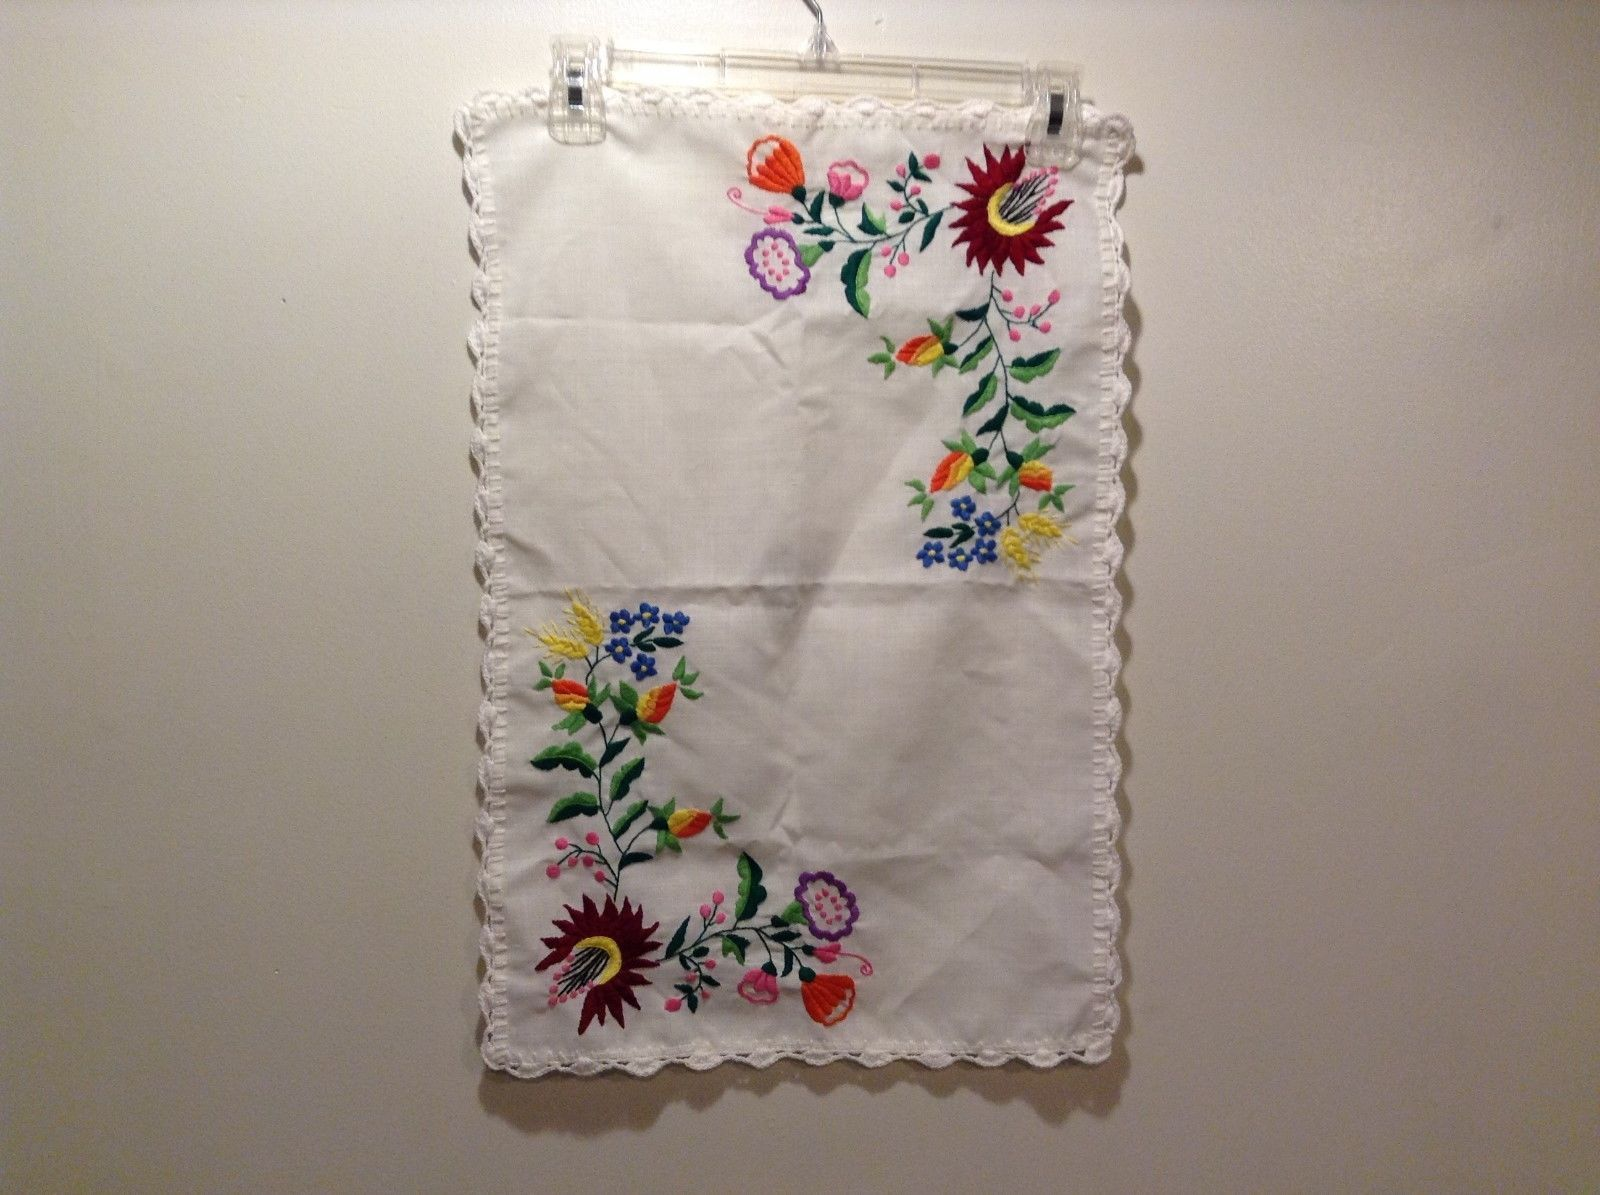 Super Cute Knit Embroidered Multicolored Floral White Table Cover/Cloth